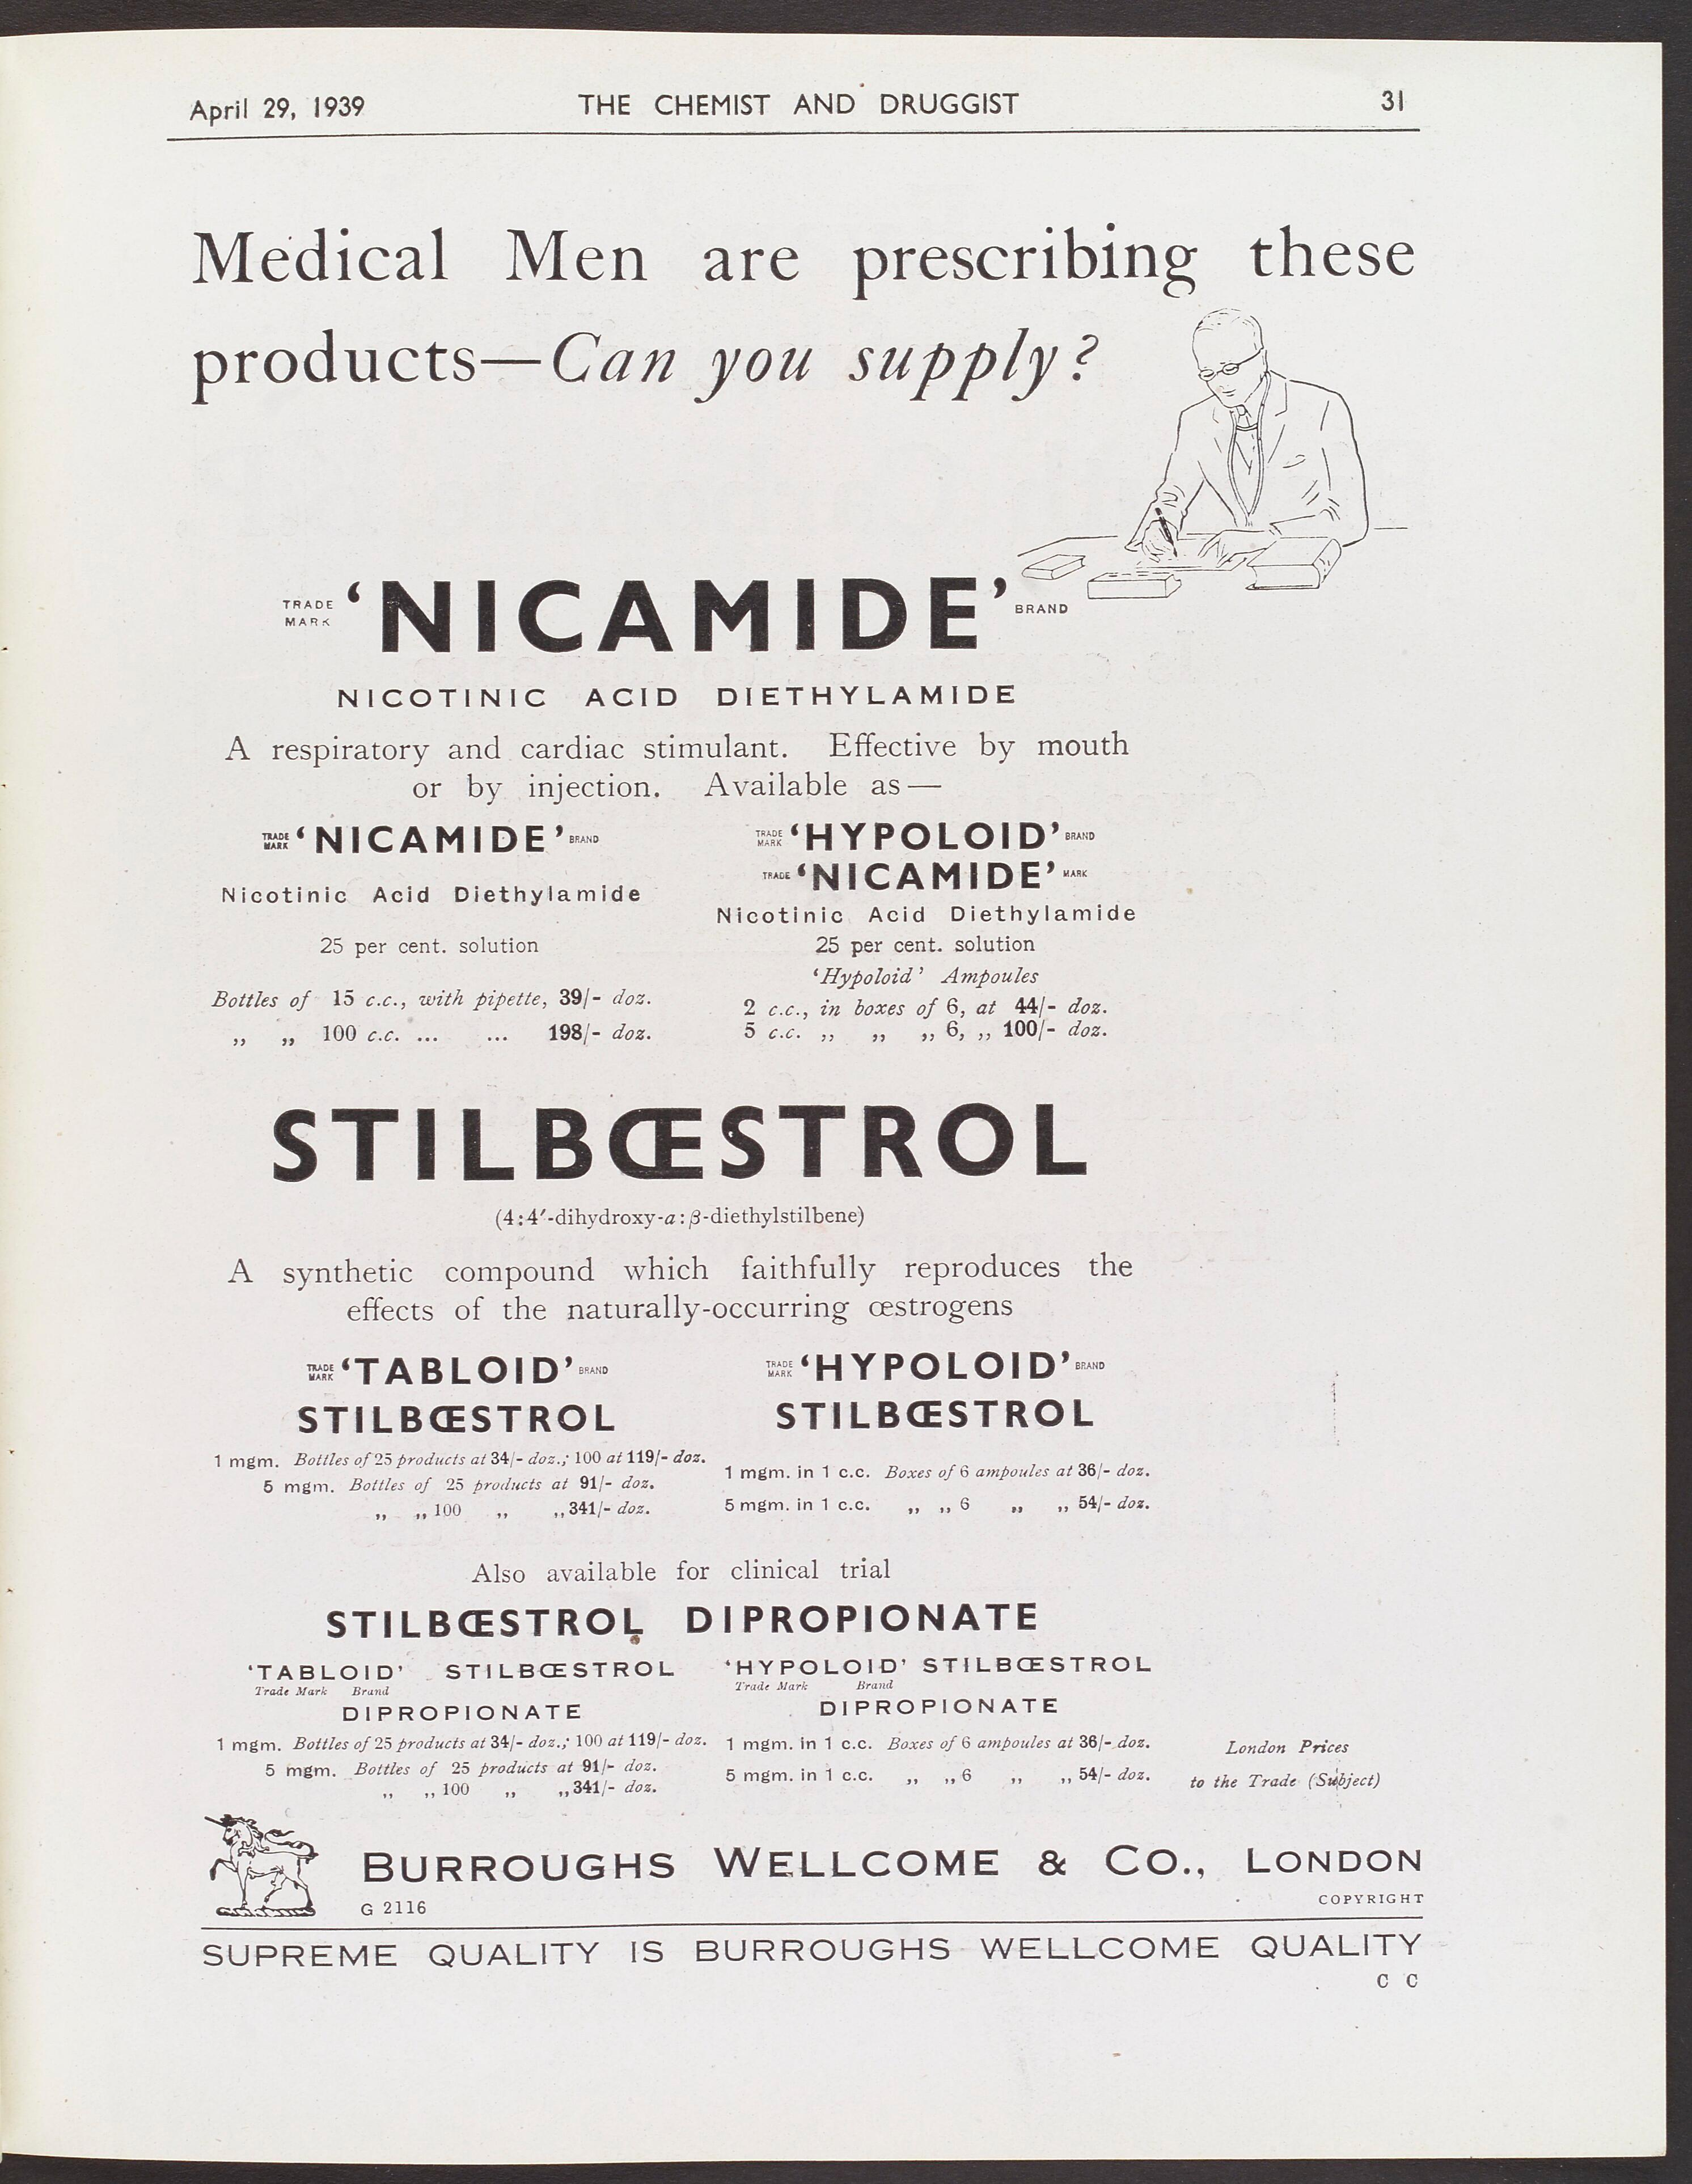 Adverts, nicamide & stilboestrol, Burroughs Wellcome, 1939